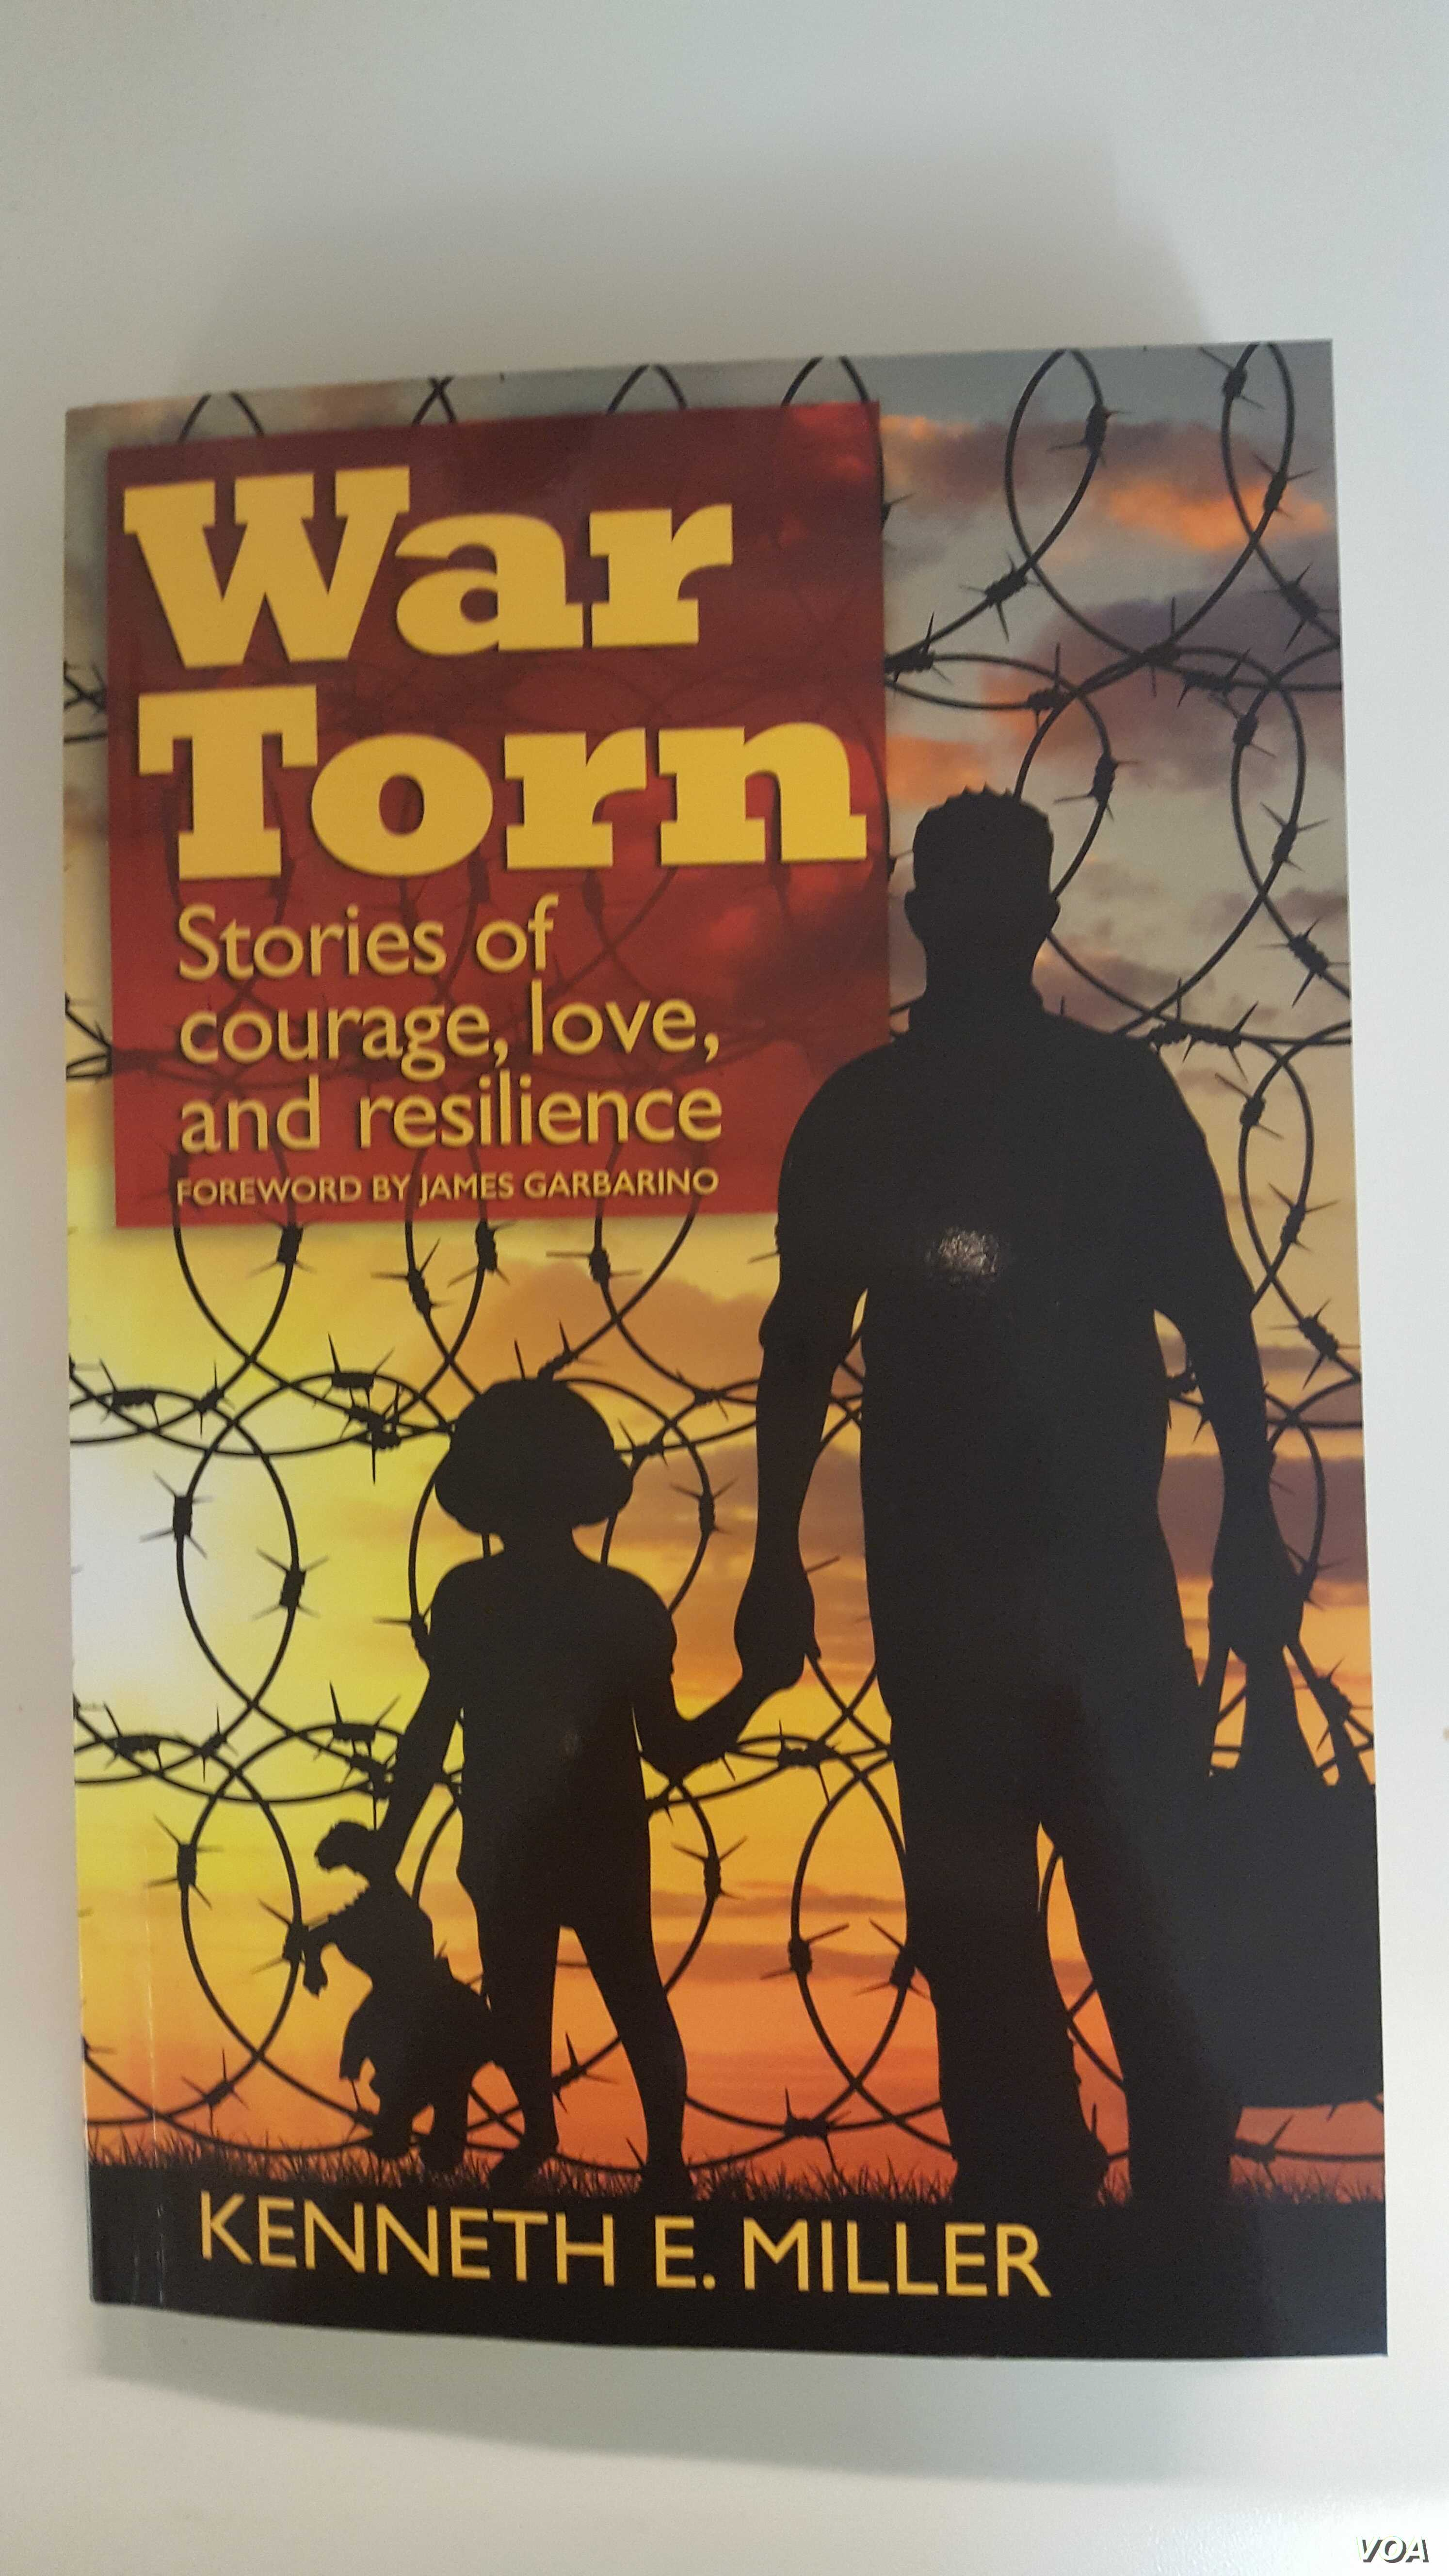 """Psychologist and researcher Kenneth Miller, in his book """"War Torn: Stories of Courage, Love and Resilience,"""" recounts the stories of refugees from Guatemala, Mexico, Bosnia, Afghanistan, Iraq and Sri Lanka."""